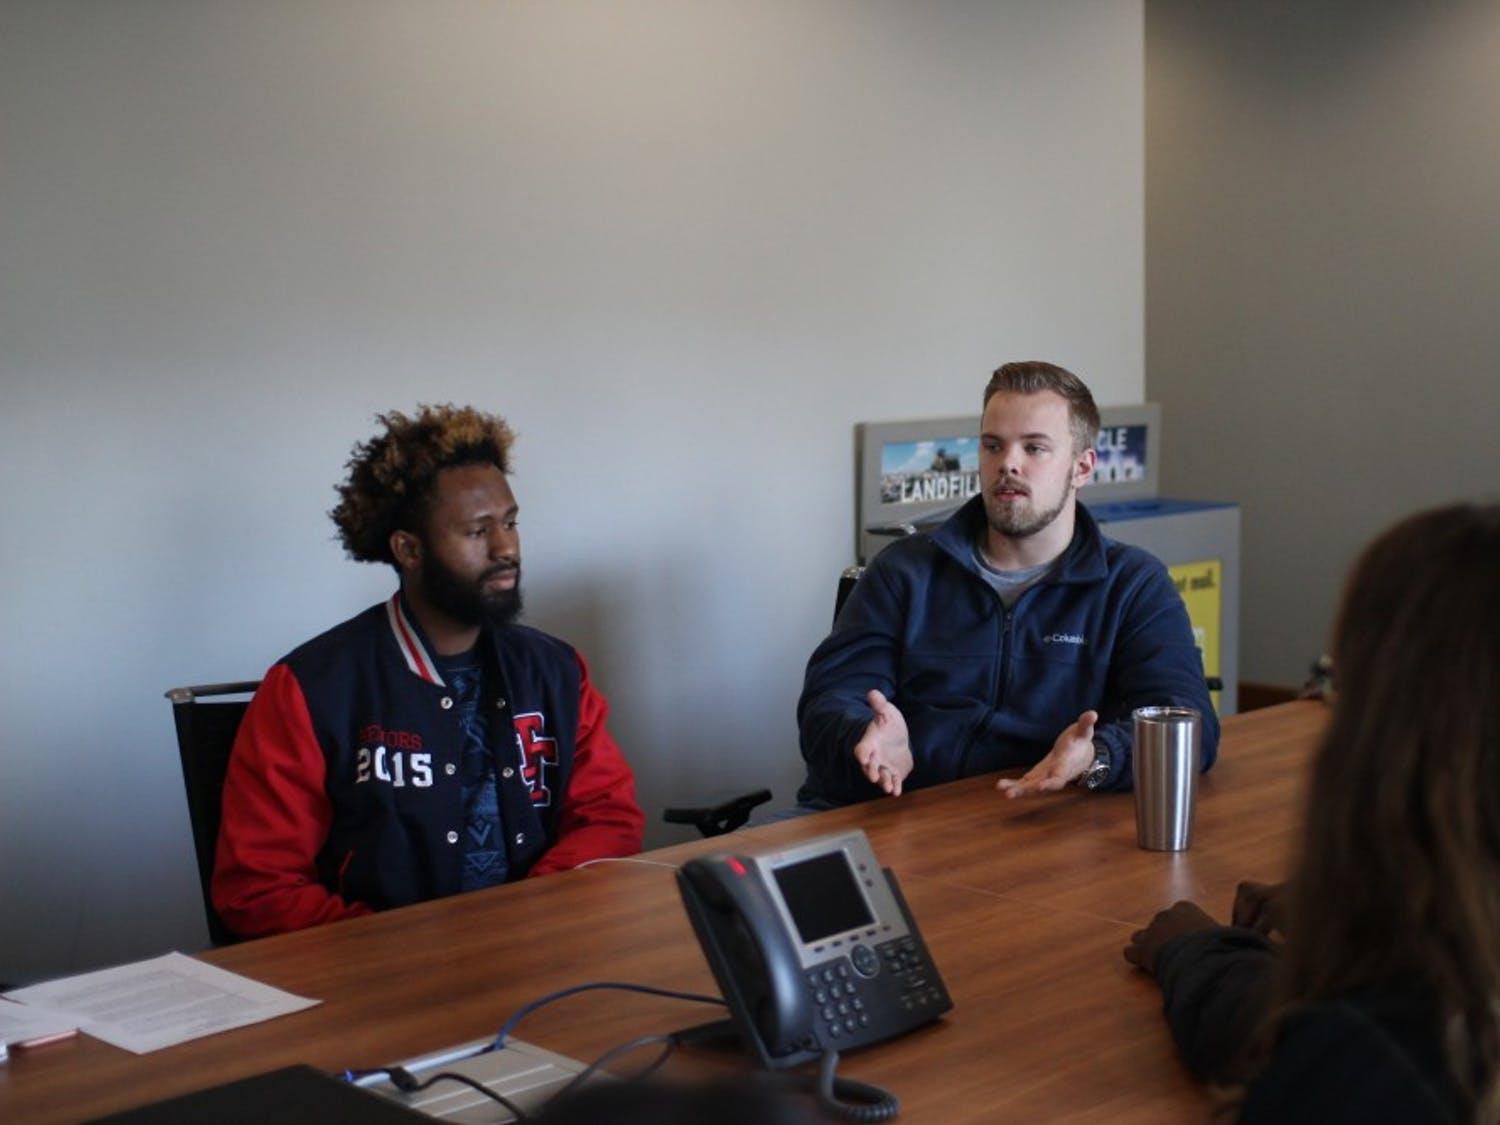 Tristan Reynolds, a senior mechanical engineering major and SU manager, discussed how the Student Union is not student-friendly. Club officials, SA government and others involved in the SU met on Wednesday to discuss UB's Student Union Master Plan.